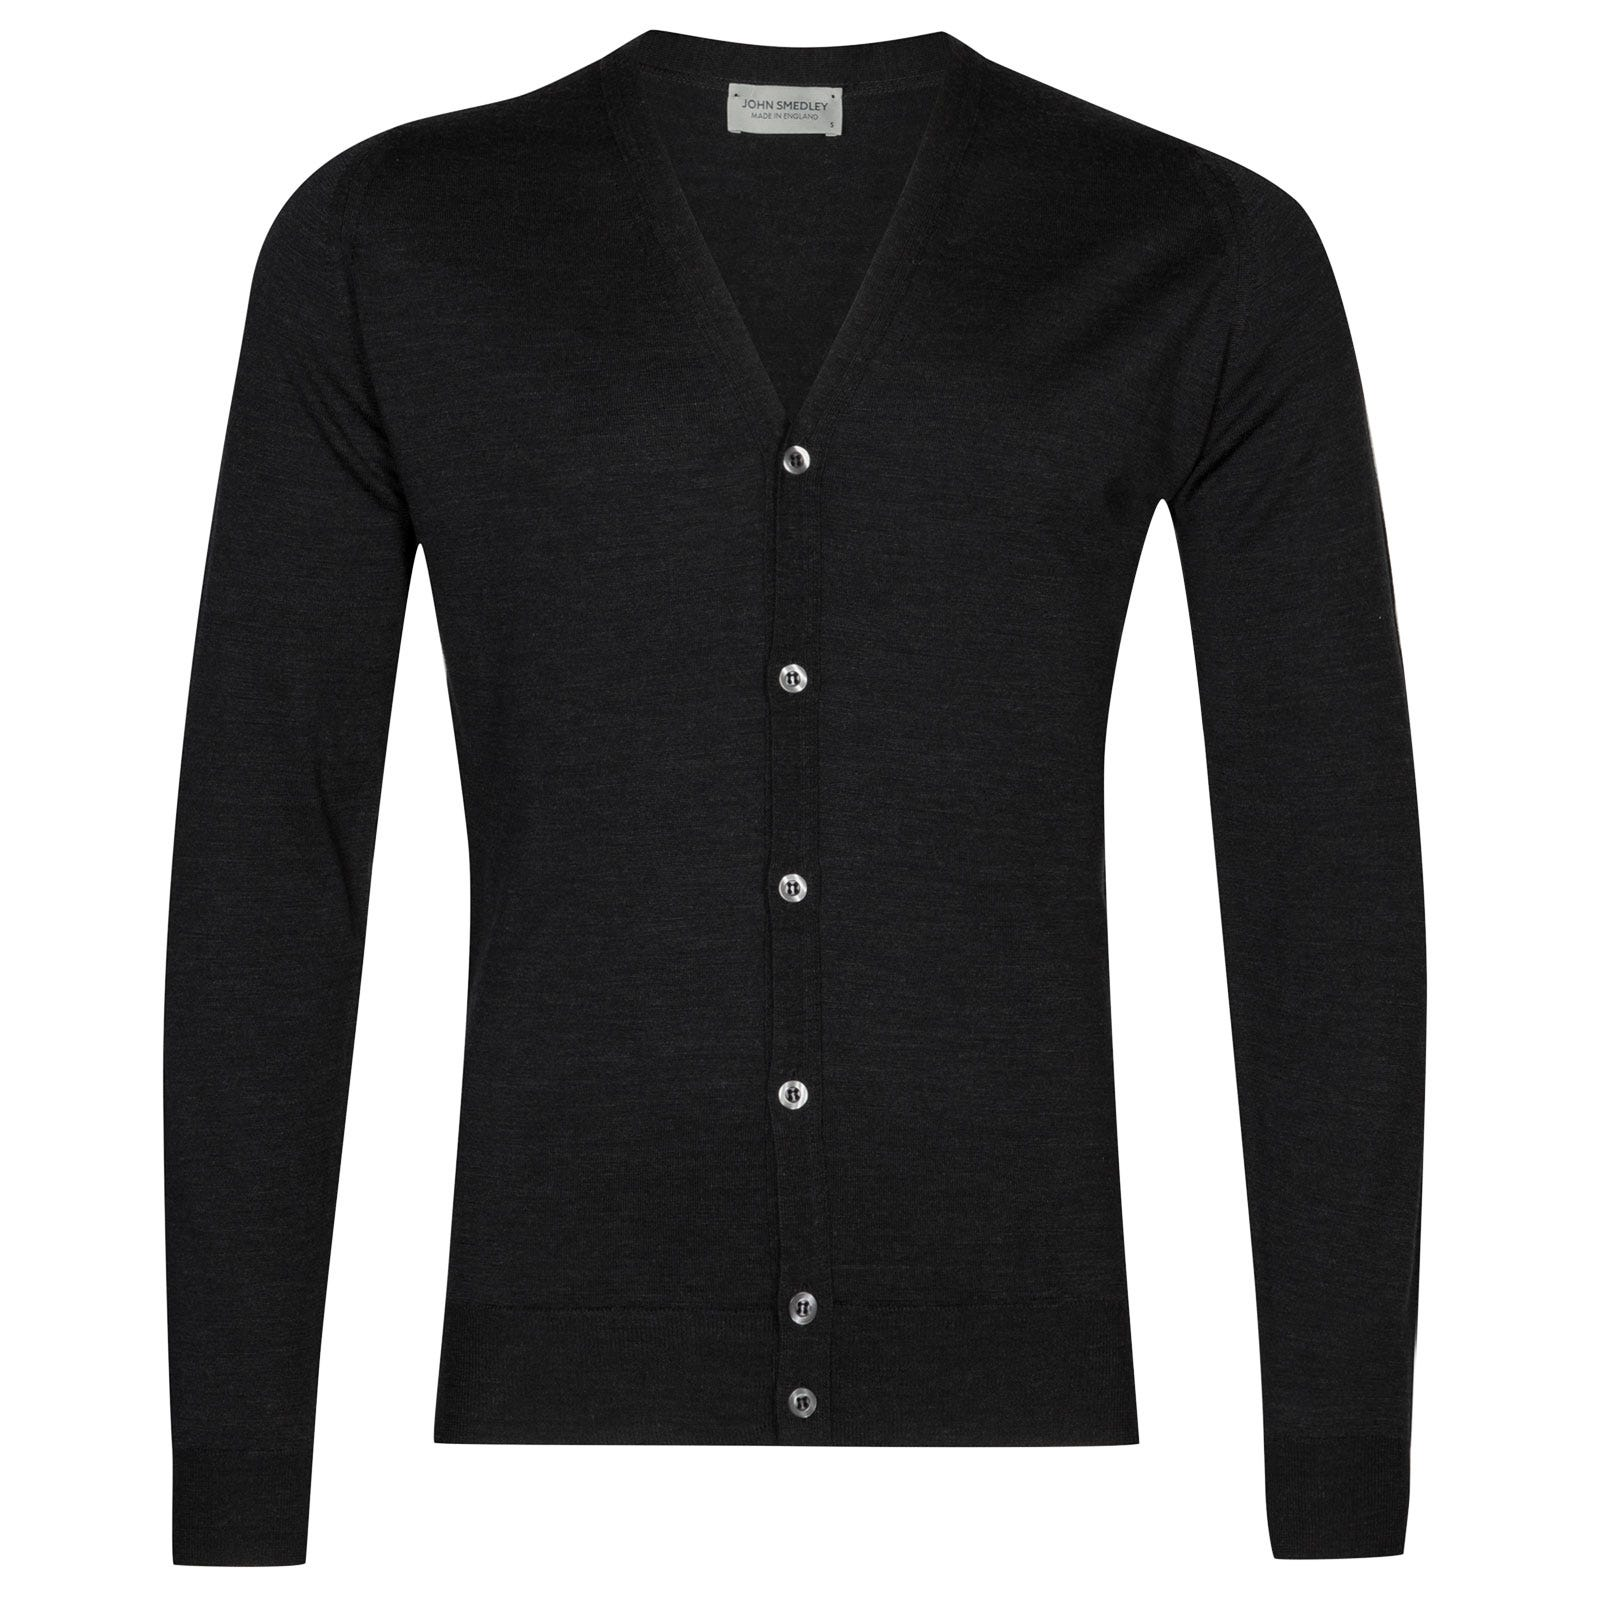 John Smedley petworth Merino Wool Cardigan in Hepburn Smoke-XL